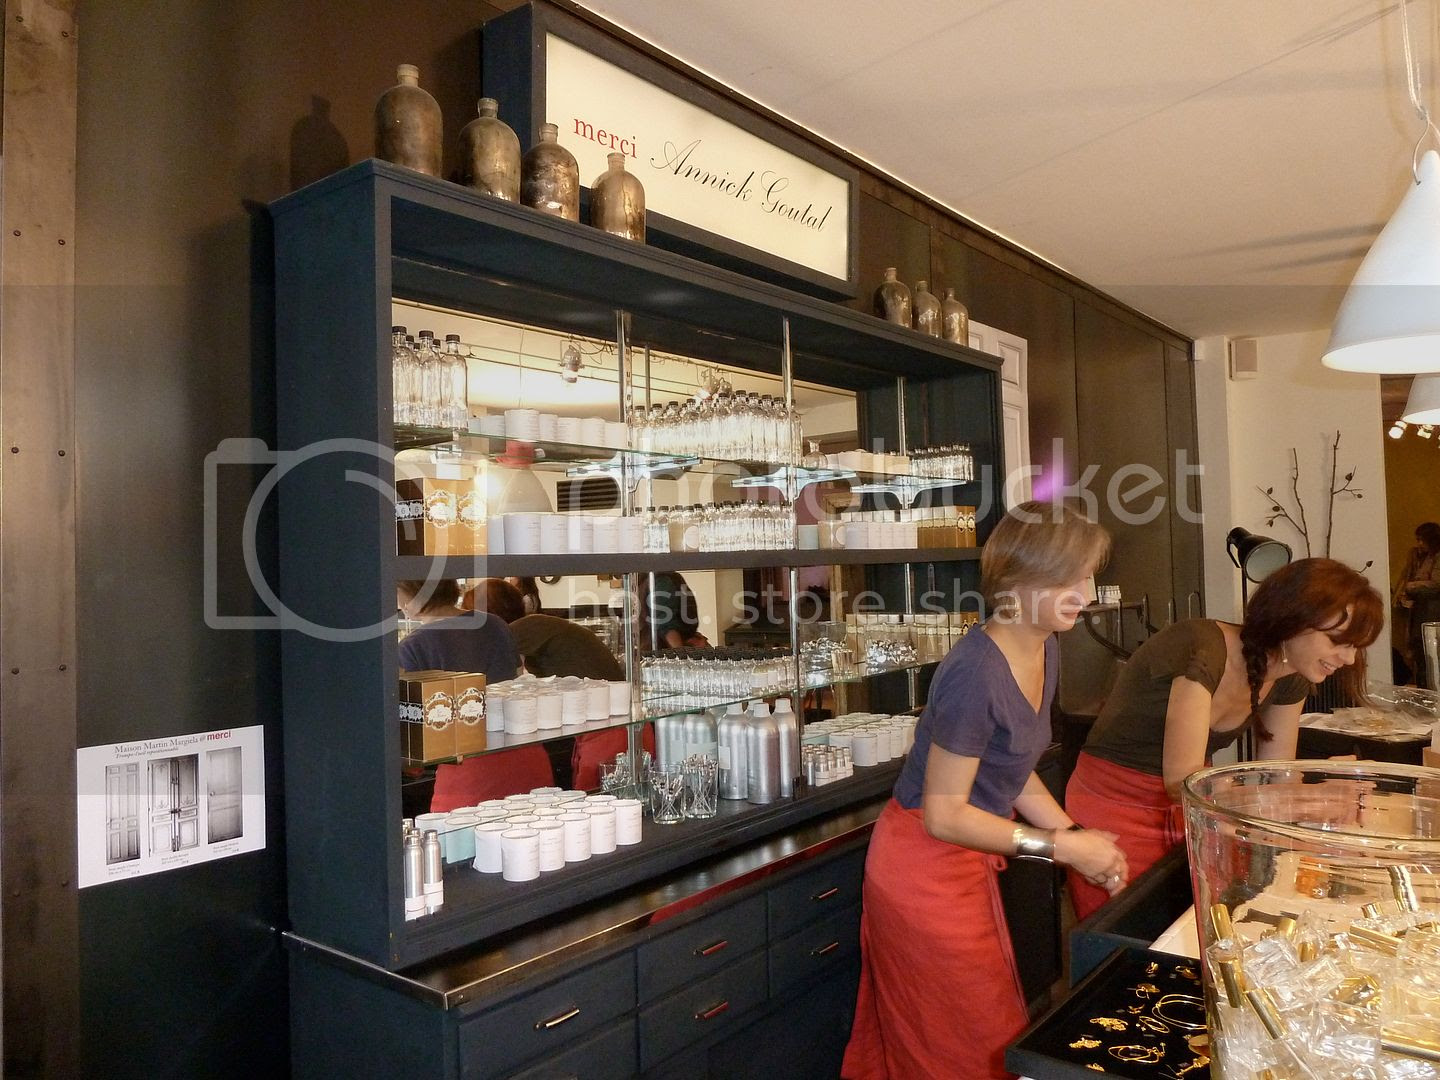 Annick Goutal counter at Merci in Paris